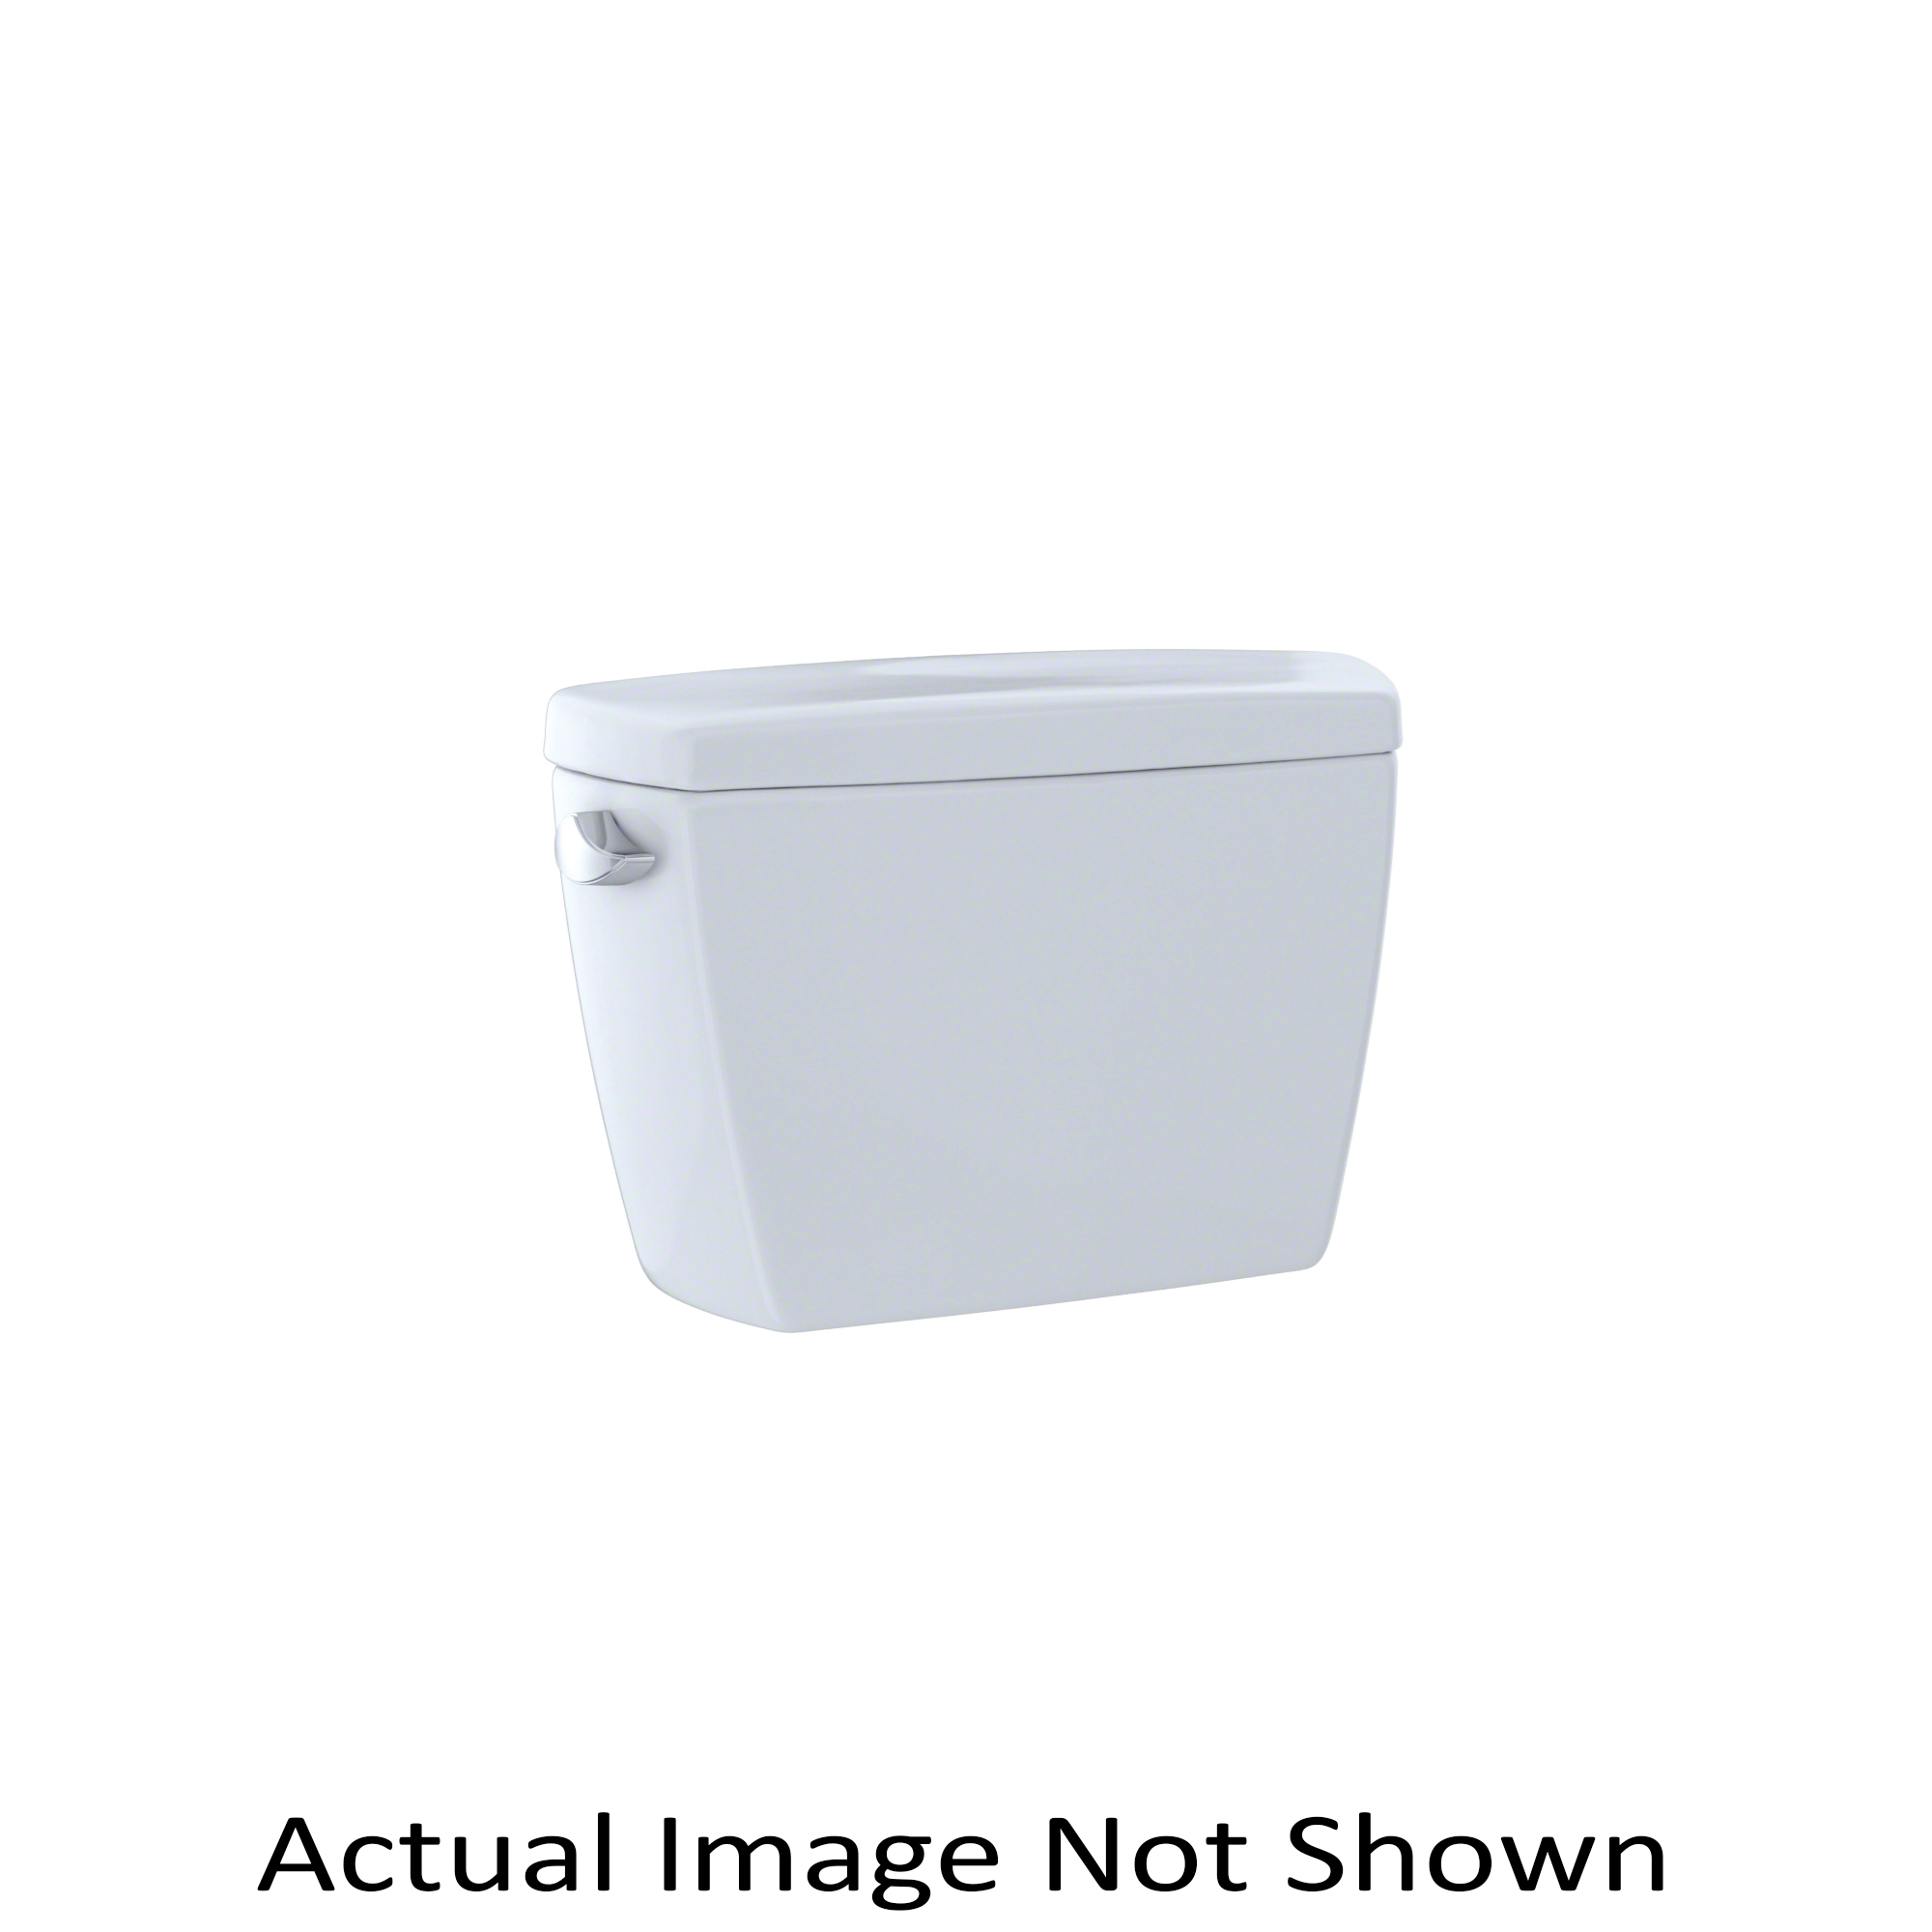 Toto® ST743SD#03 Tank and Cover, 1.6 gpf, Left Hand Lever Flush Handle, 3 in Flush, Bone, Import